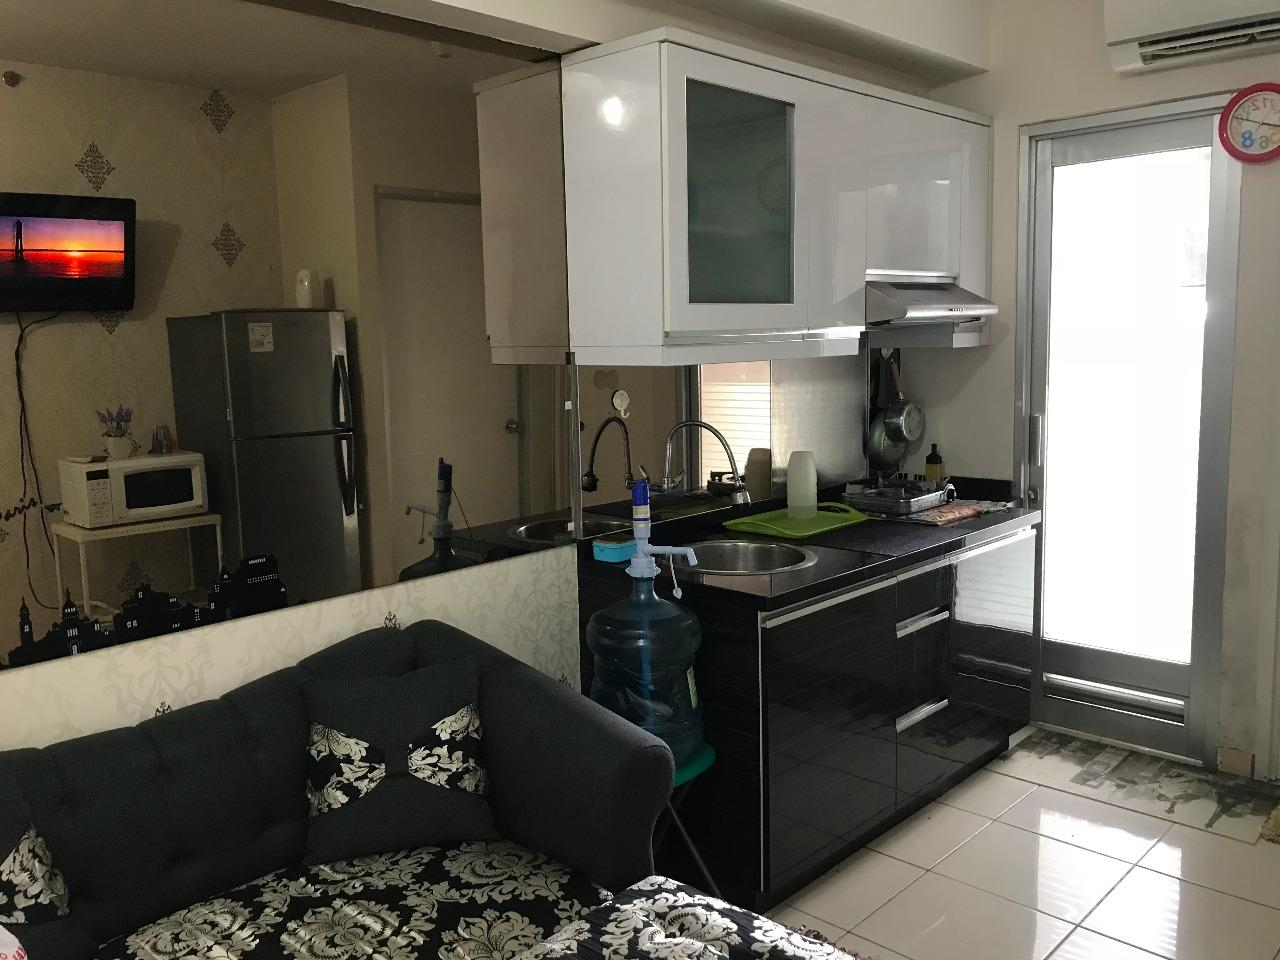 Green Bay Pluit - Black And White Décor 1BR Apartment Green Bay Pluit Tower Akasia